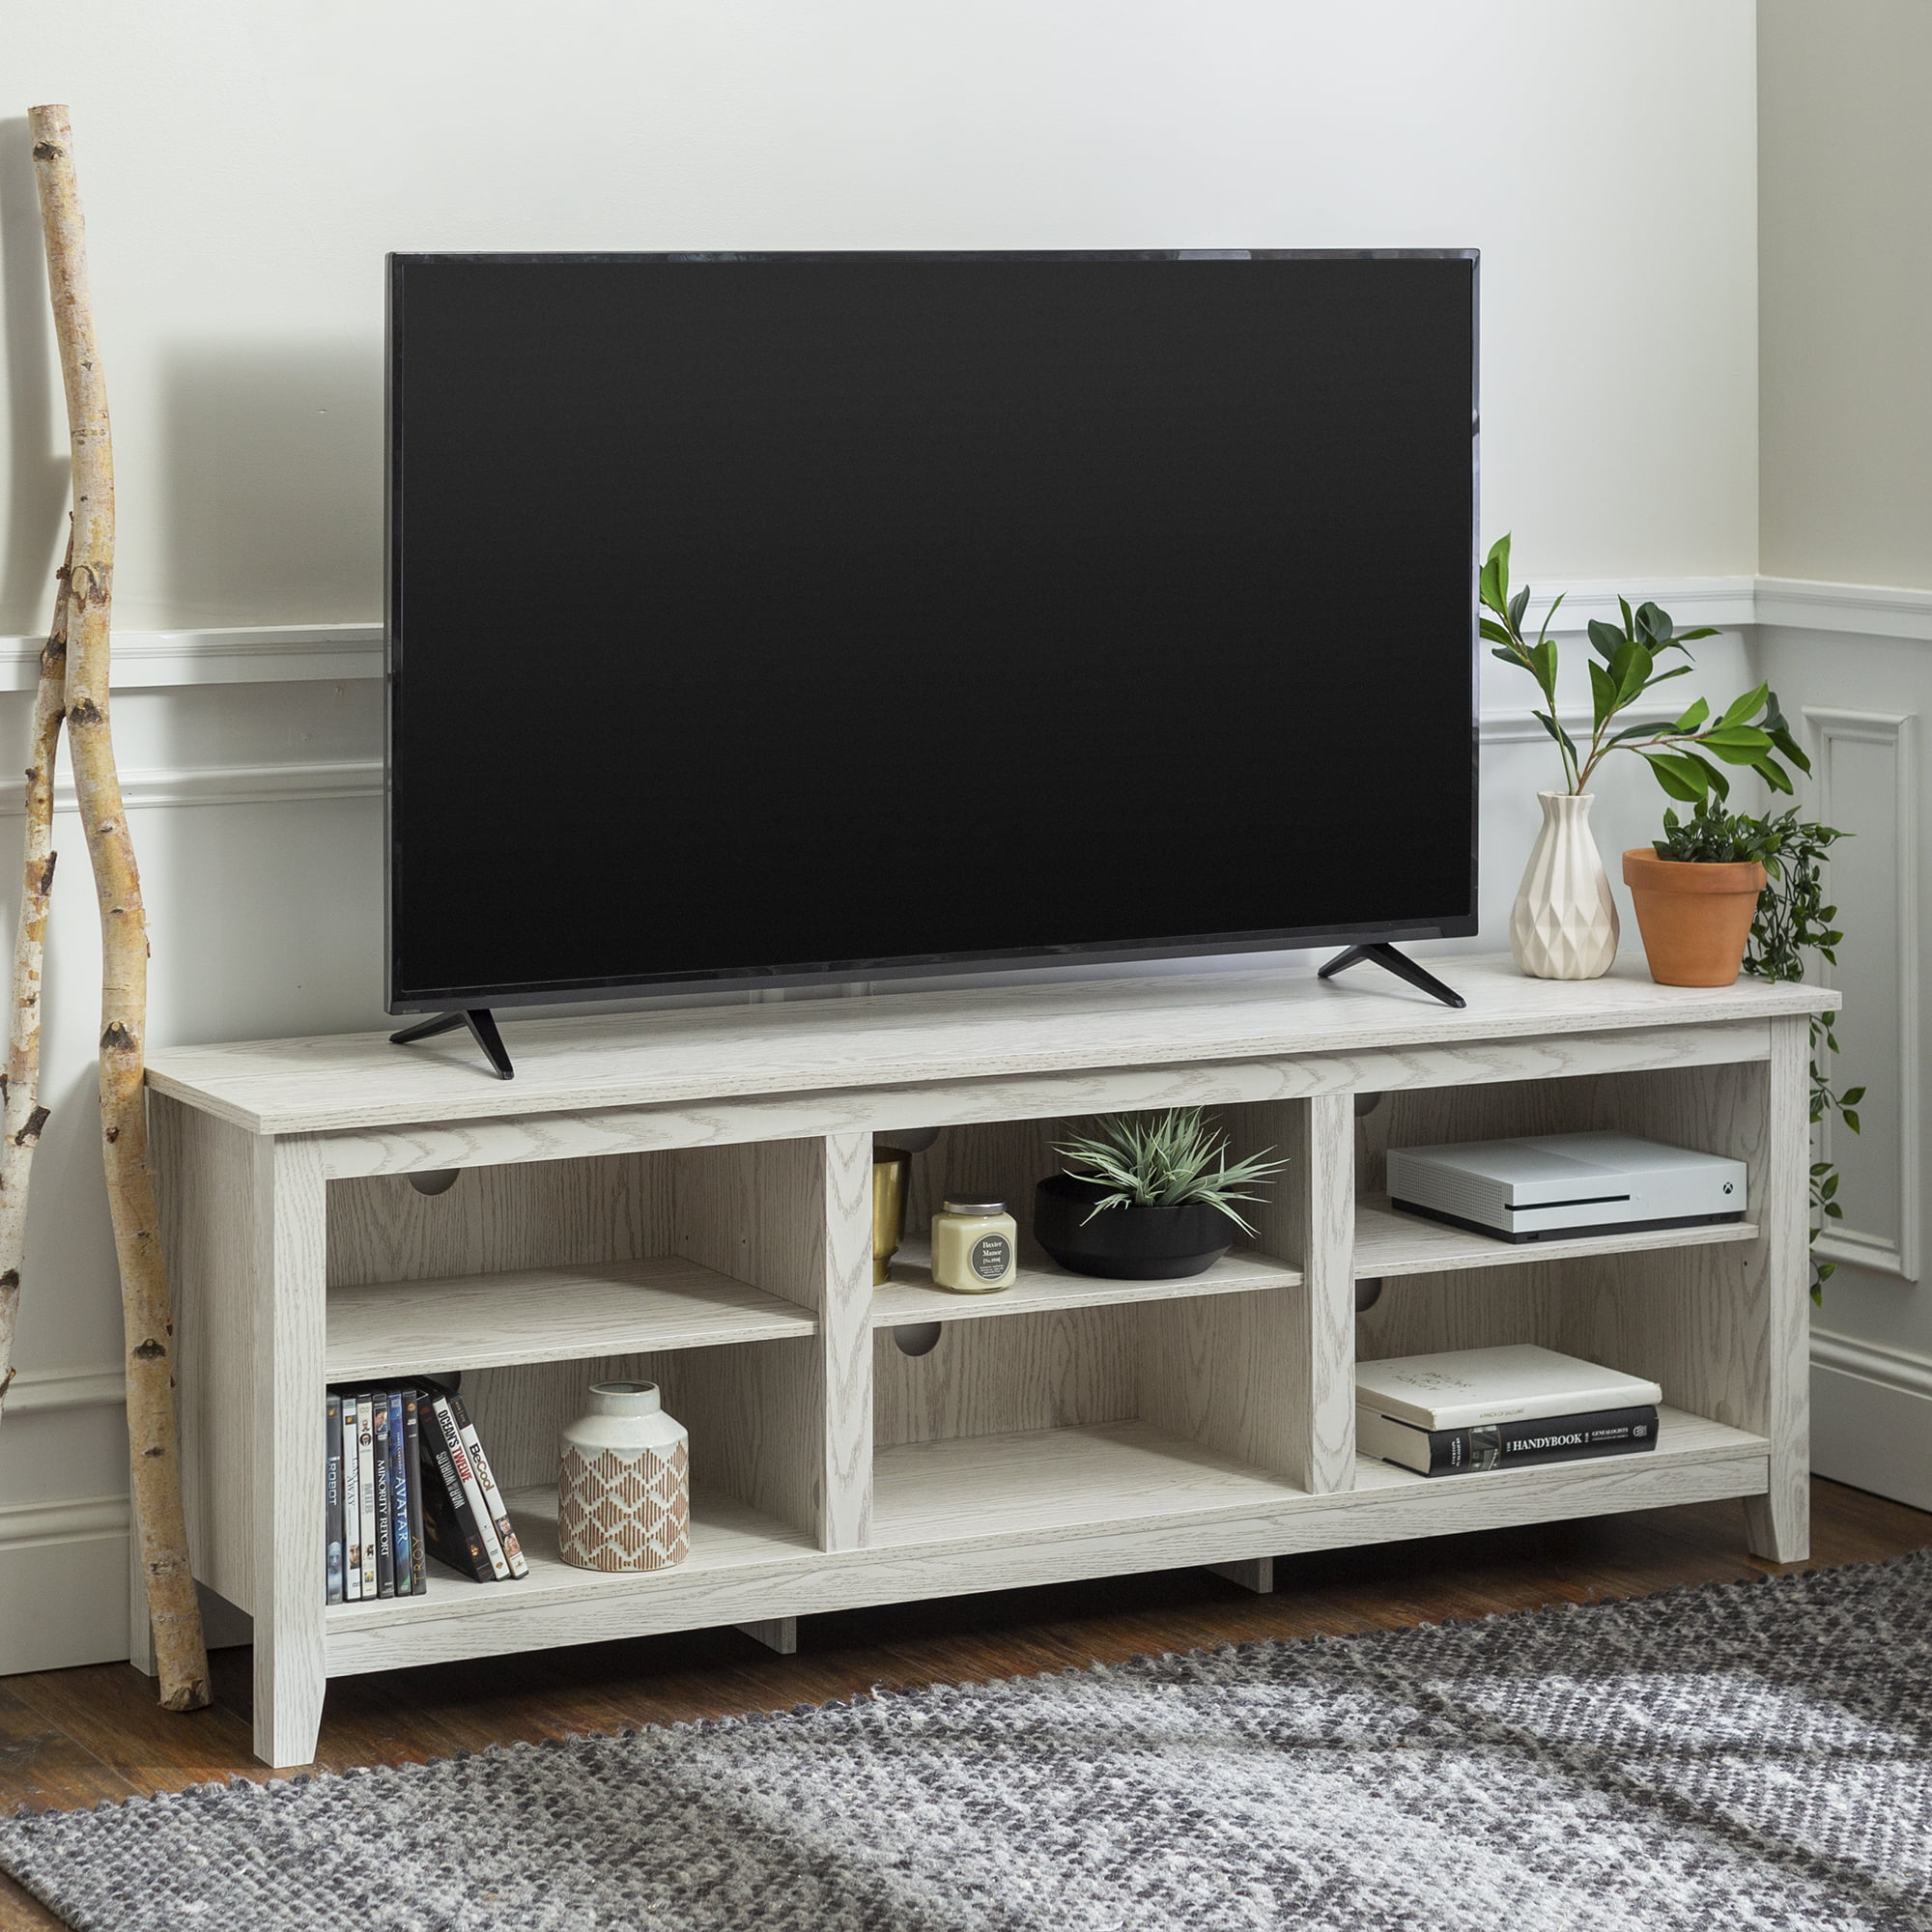 Manor Park Wood Tv Media Storage Stand For Tvs Up To 78 White Wash Walmart Com Walmart Com